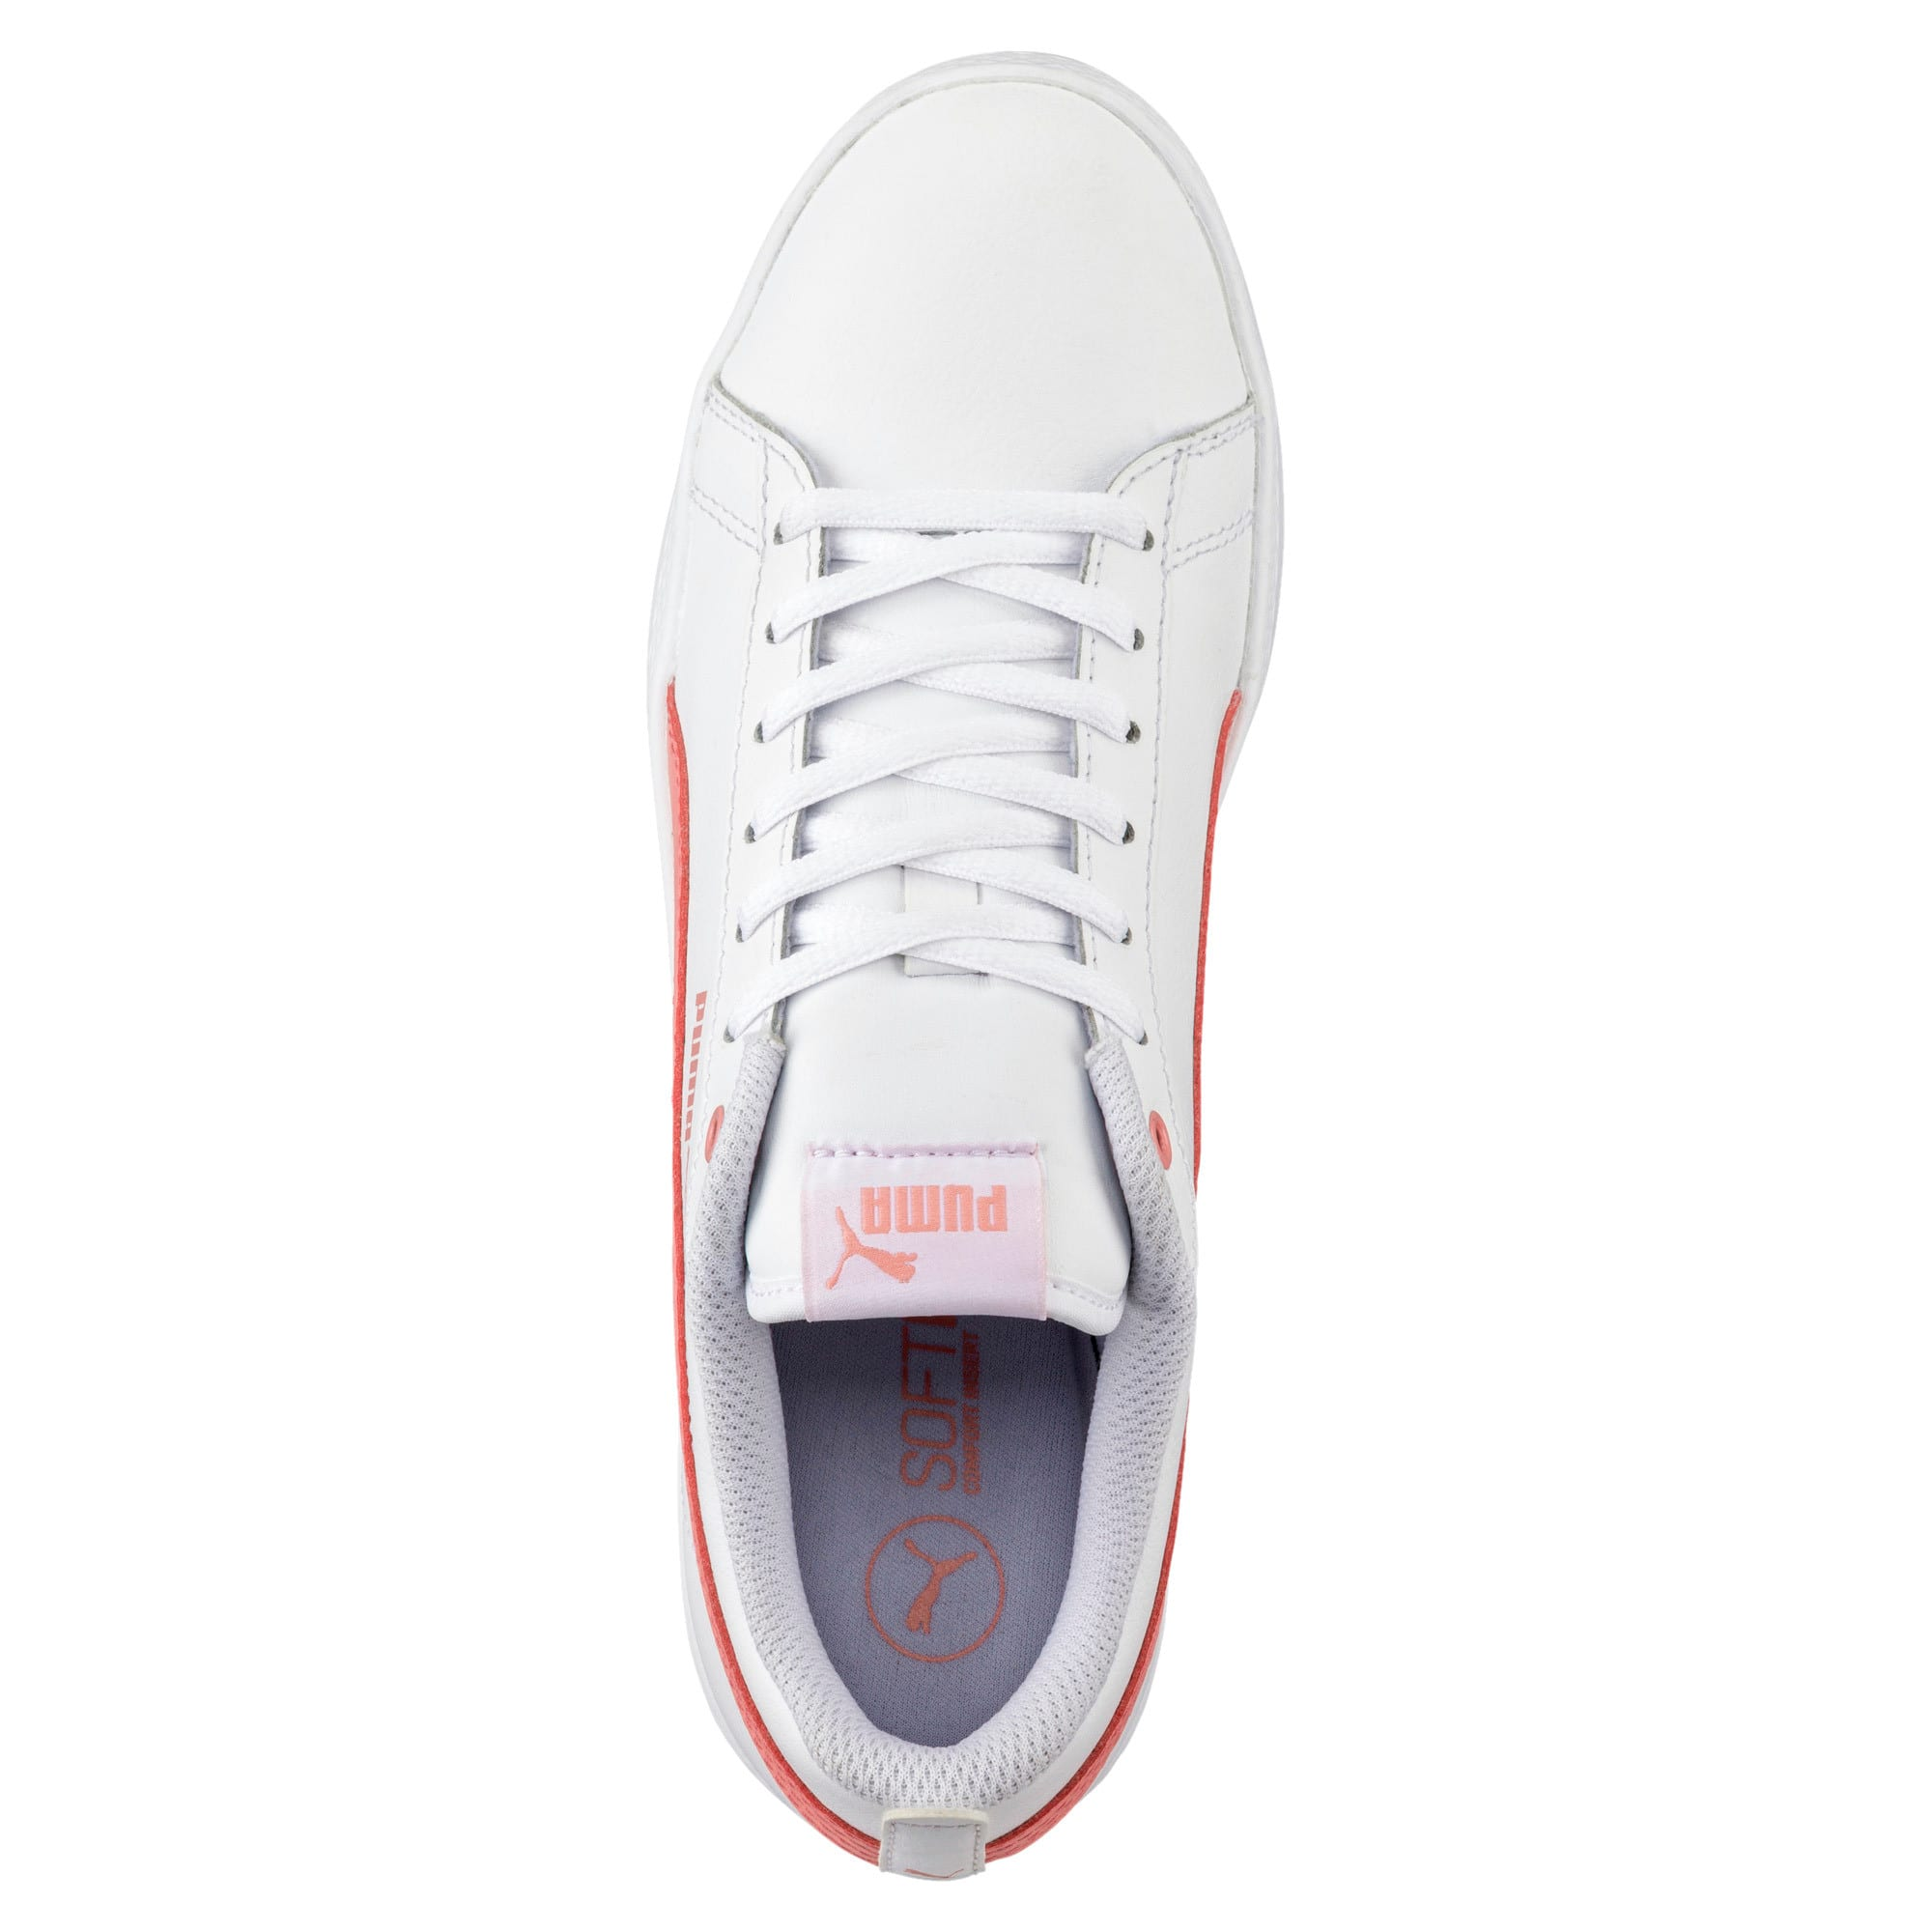 Thumbnail 5 of Smash v2 Leather Women's Trainers, Puma White-Shell Pink, medium-IND